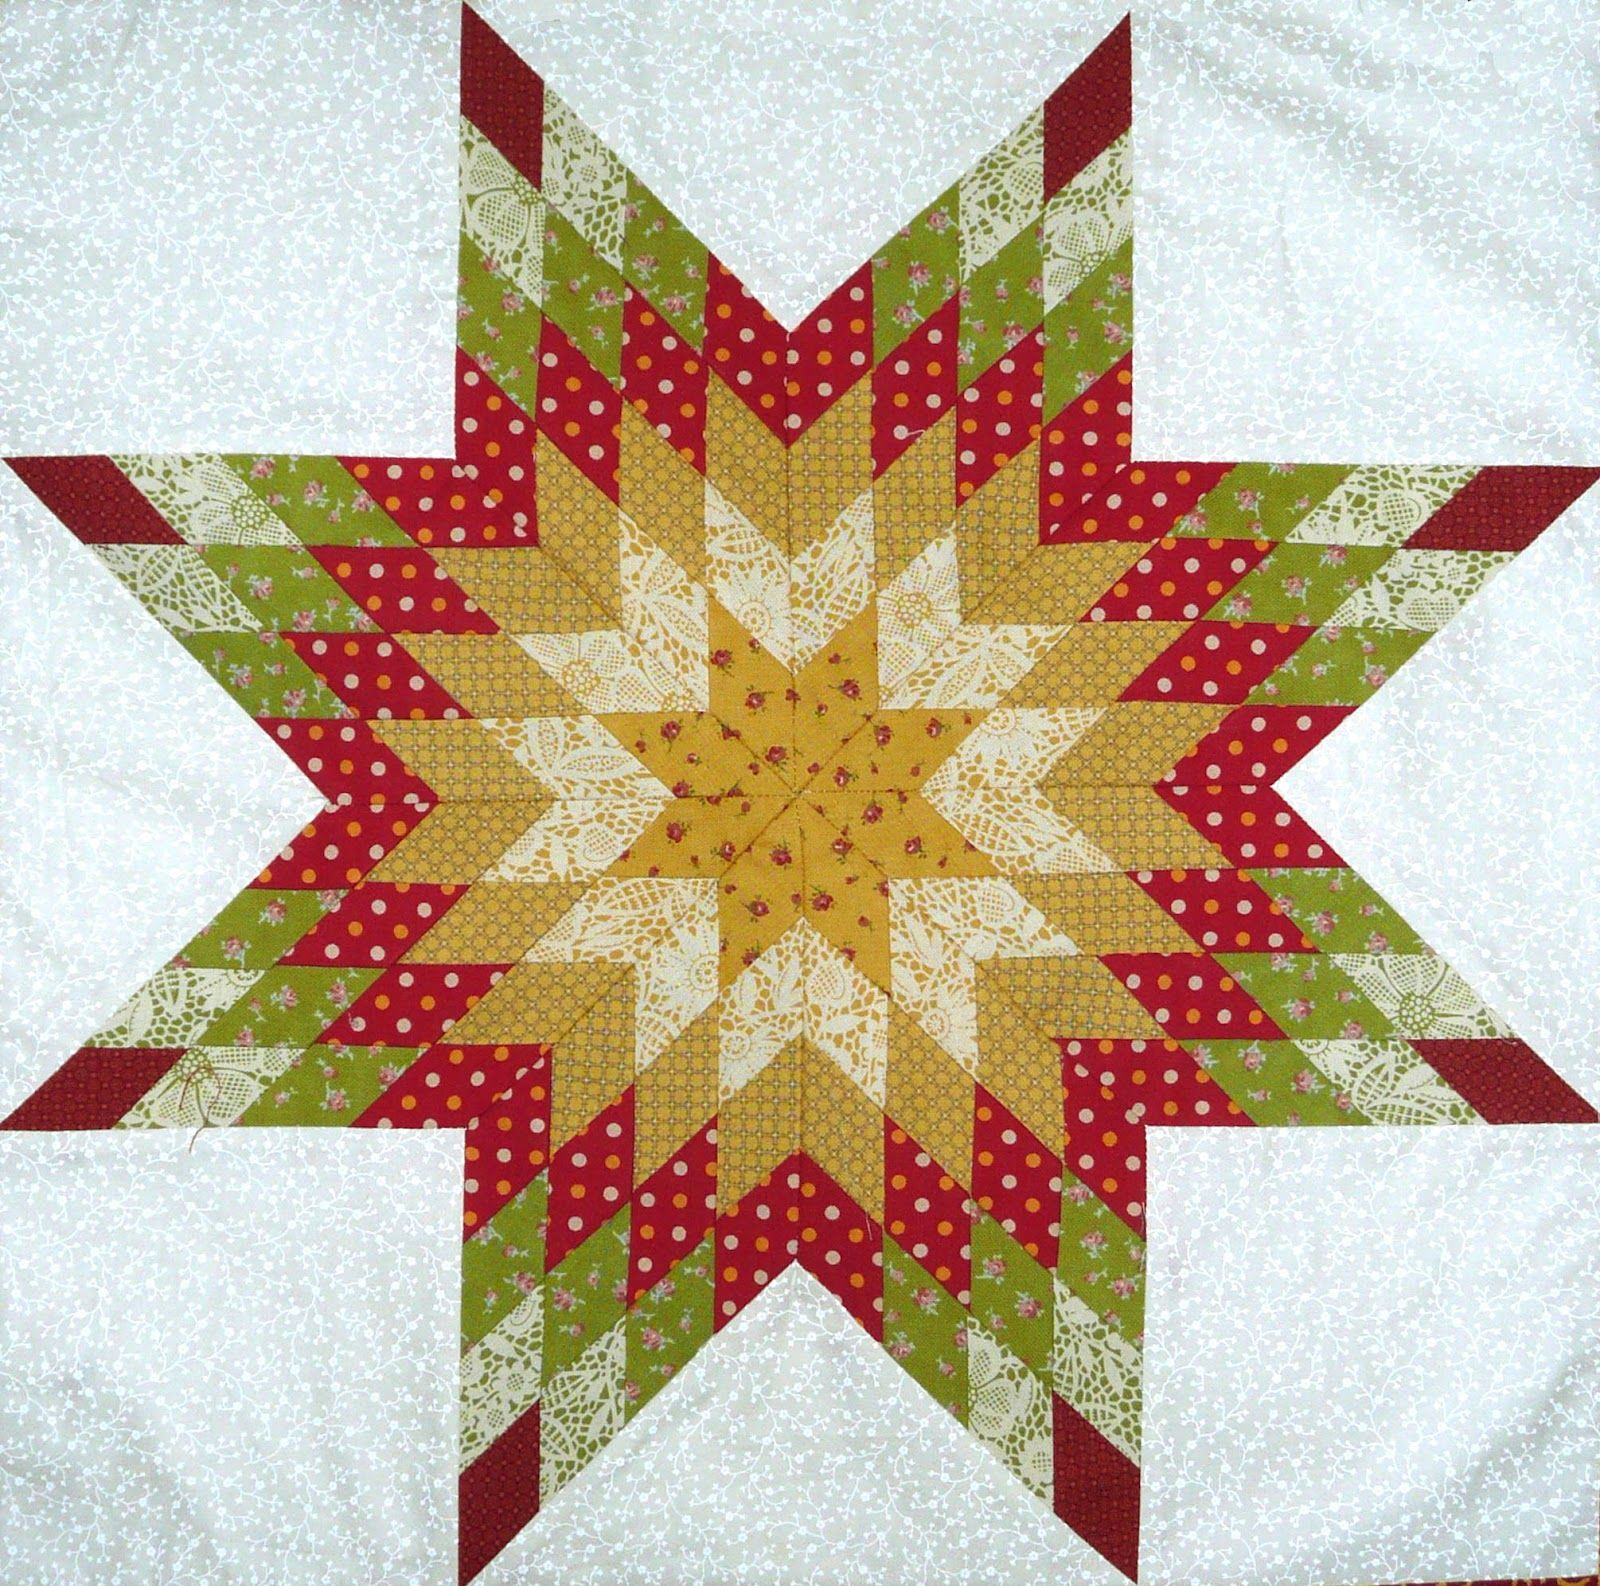 Lone Star Quilt Pattern Free Printable - Bing Images | Quilts - Quilt Patterns Free Printable